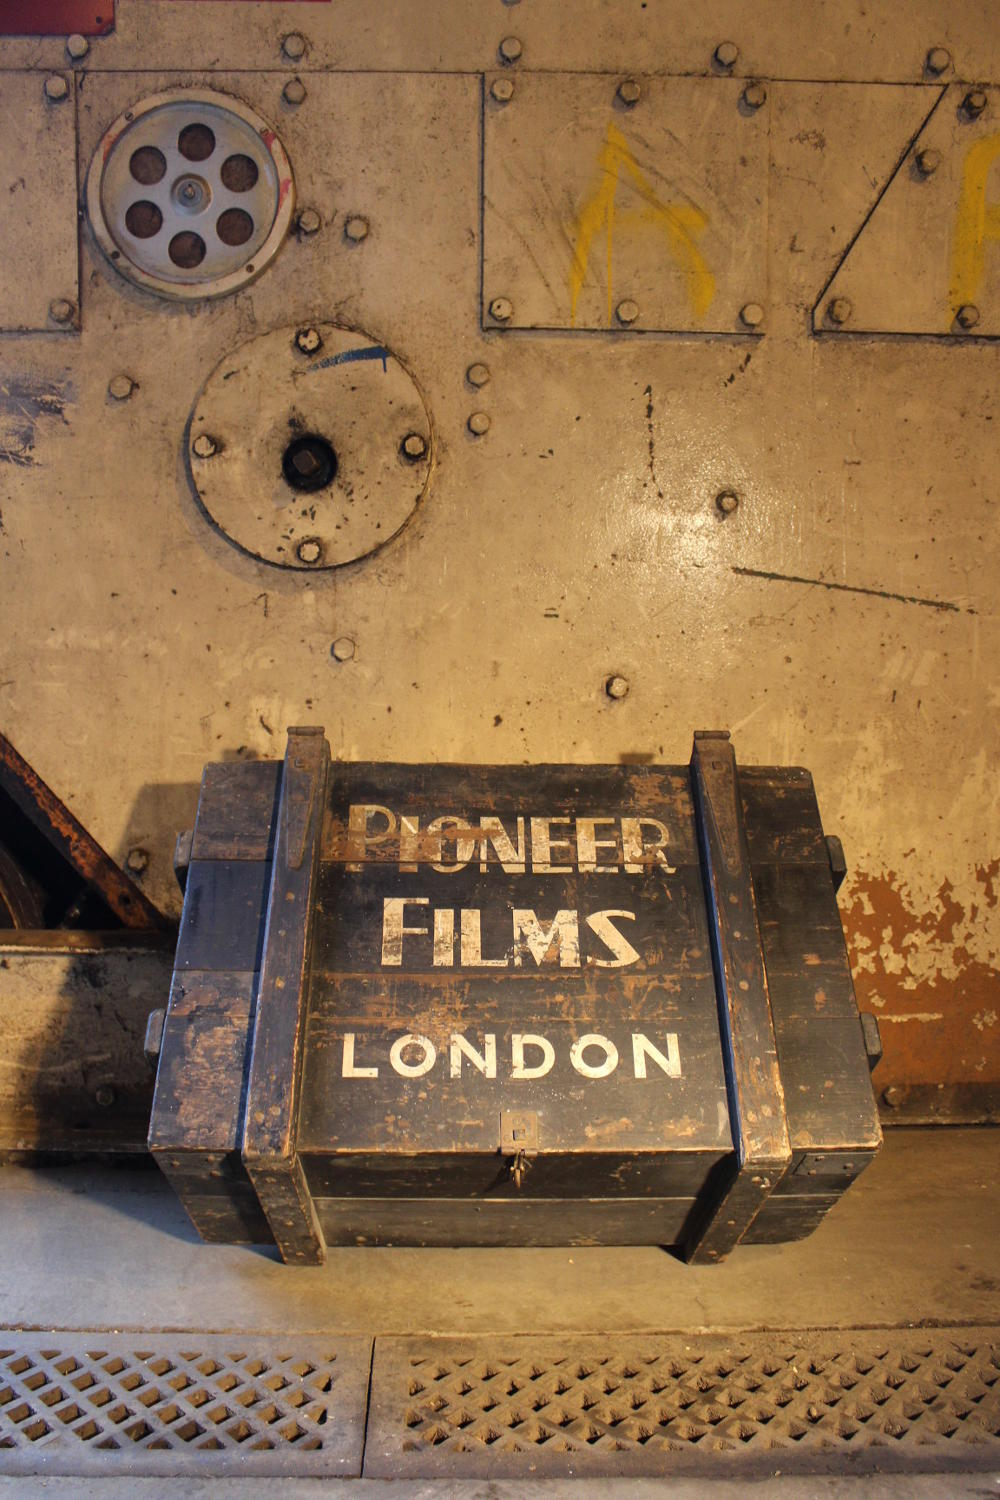 A Pine Transit Trunk for Pioneer Films London